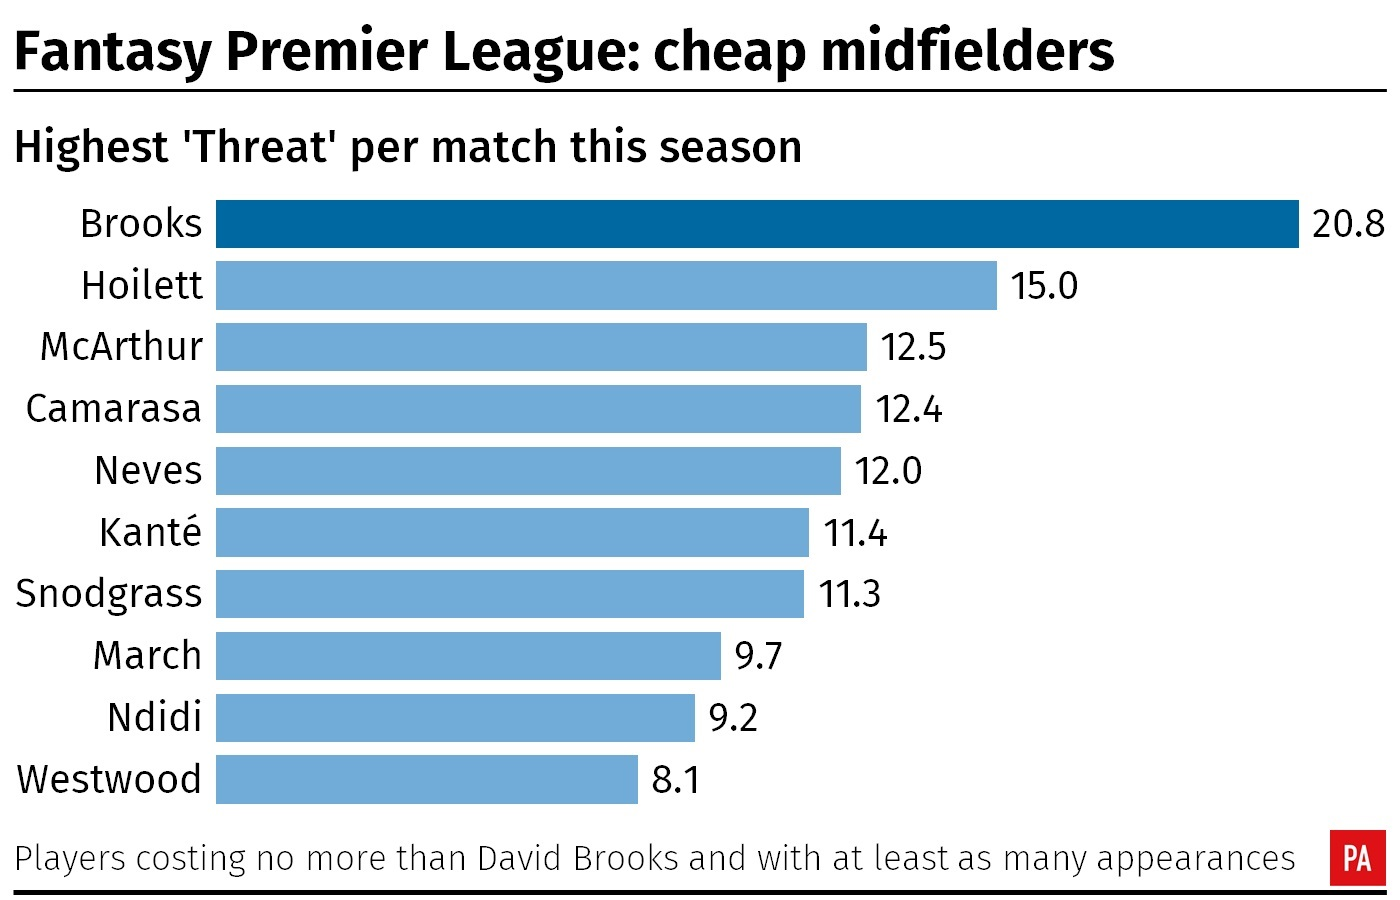 A table showing the 'Threat' of Fantasy Premier League midfielders per match this season